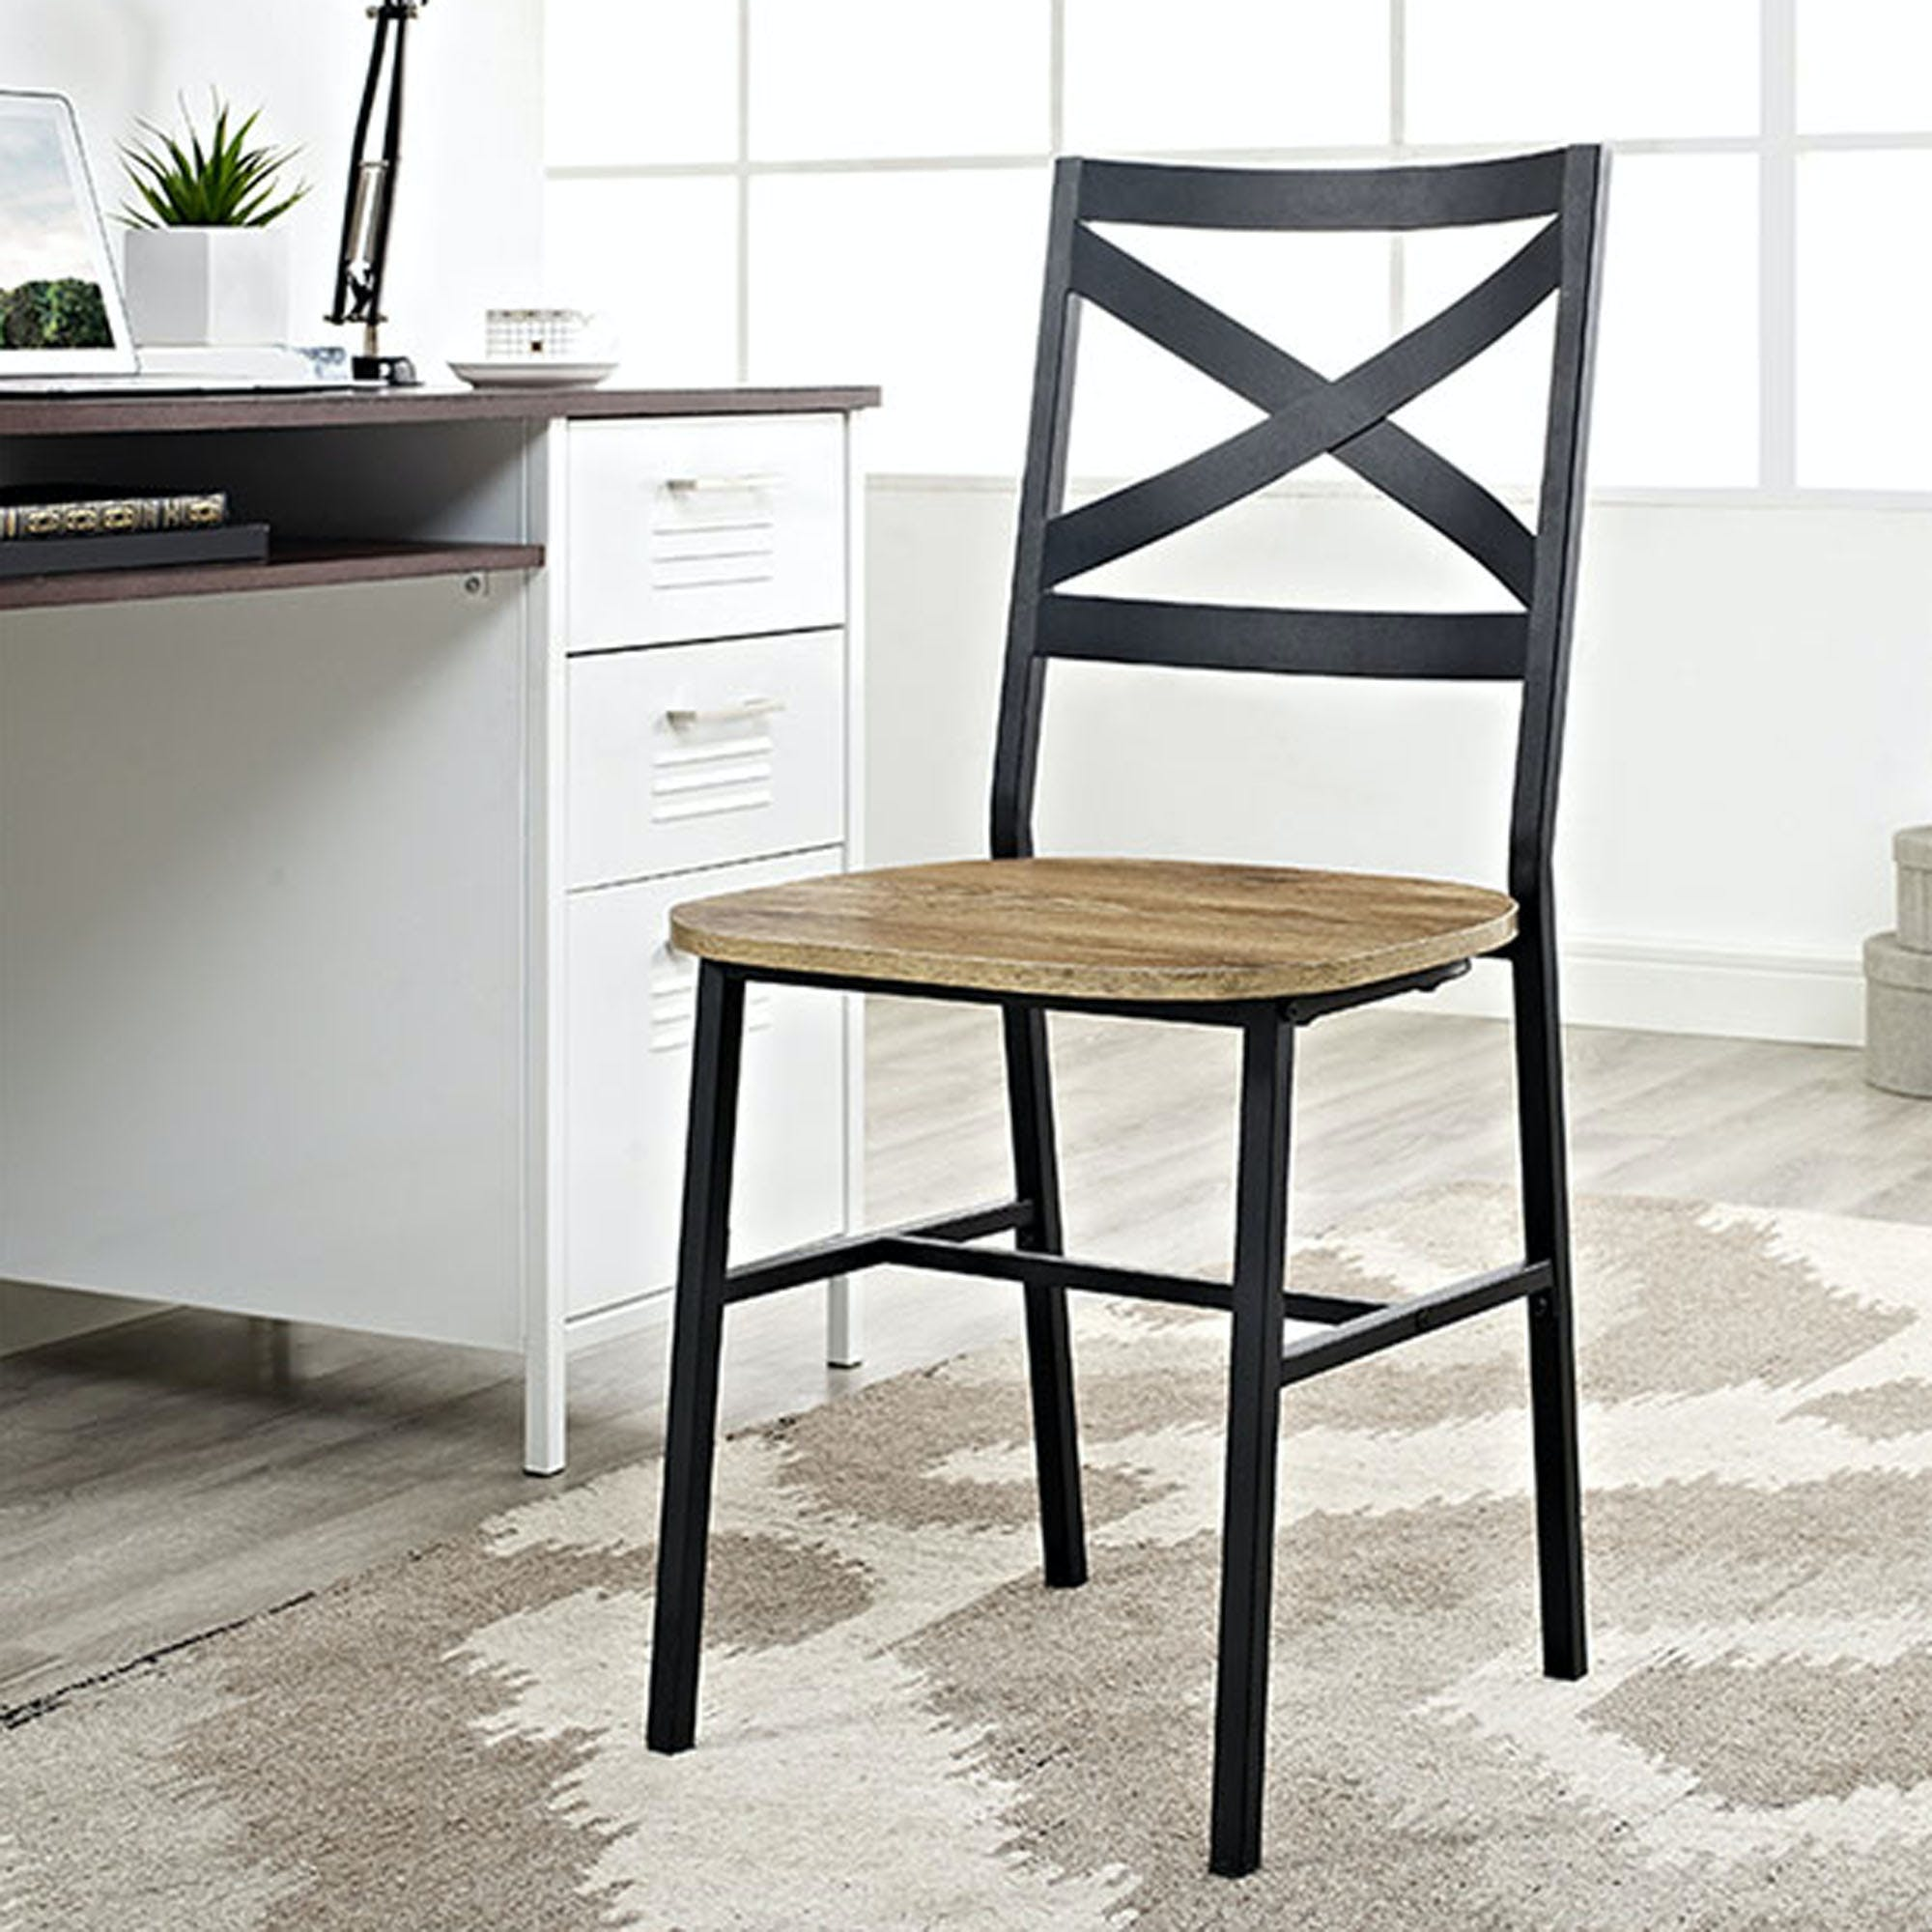 Ft Myers Dining Room Metal X Back Wood Dining Chair Set Of 2 Wedch18ai2bw Walter E Smithe Furniture Design